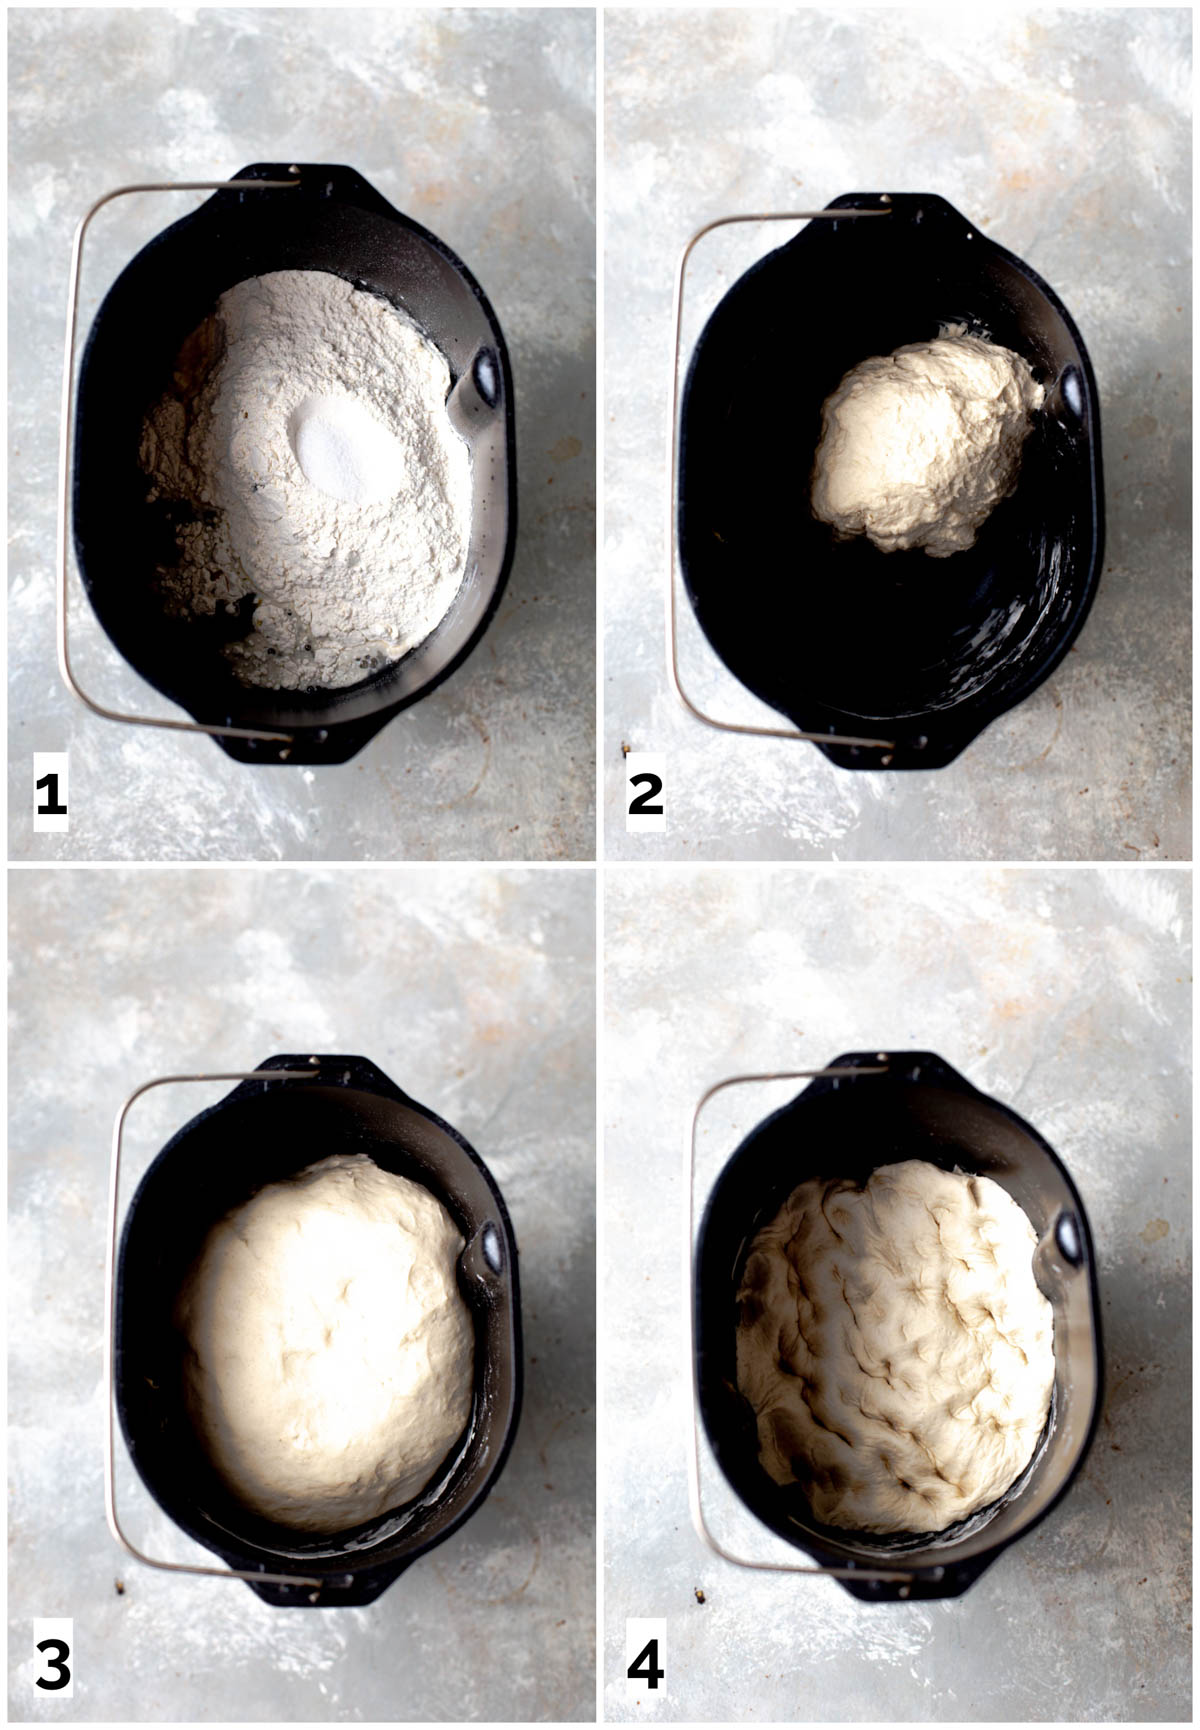 A collage of four image showing the first four steps in making bread dough.